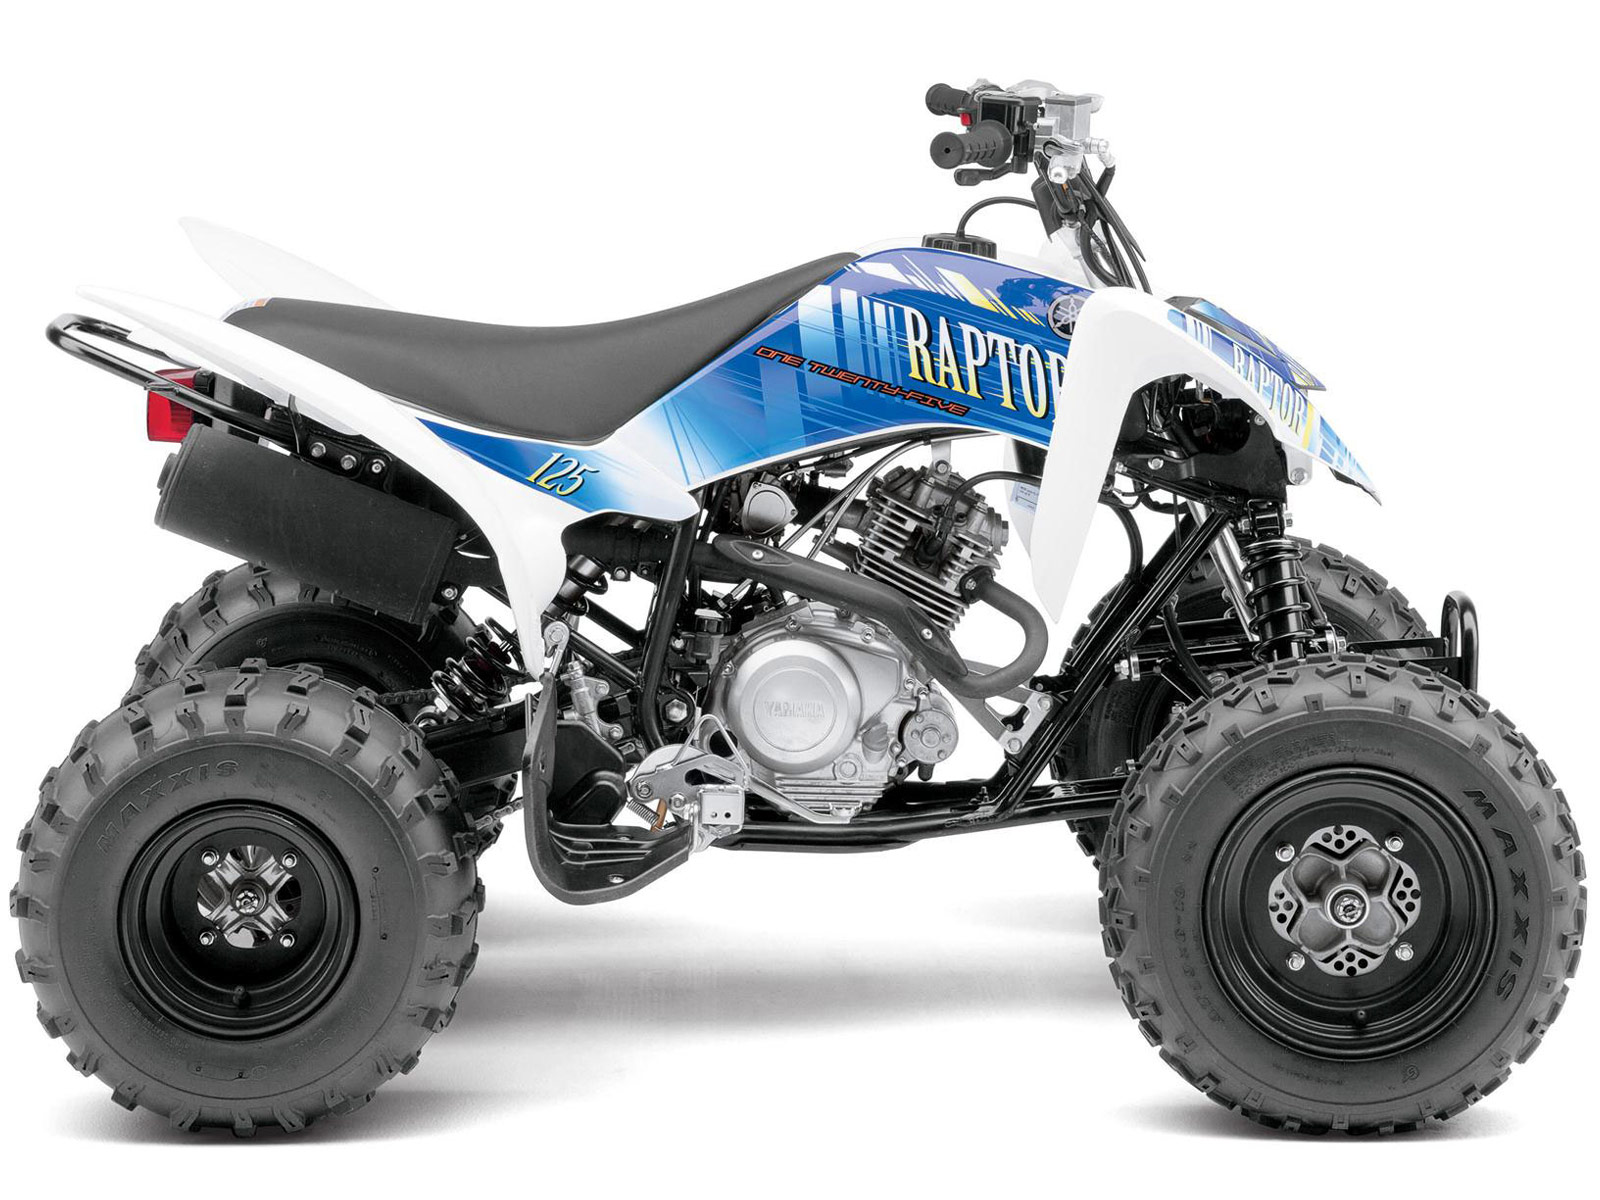 2013 yamaha pictures raptor 125 atv insurance information. Black Bedroom Furniture Sets. Home Design Ideas